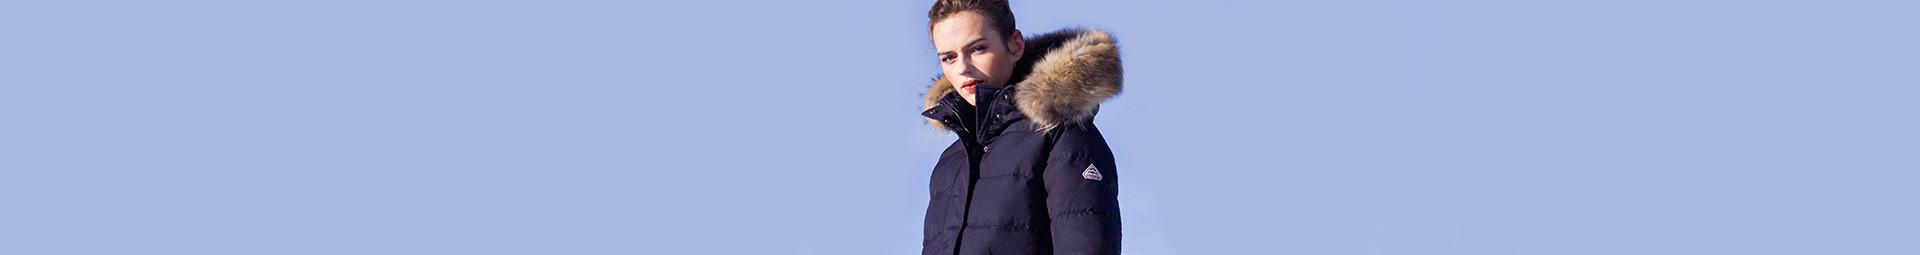 Womens parka coats. Winter or mid-season warm jacket | Pyrenex